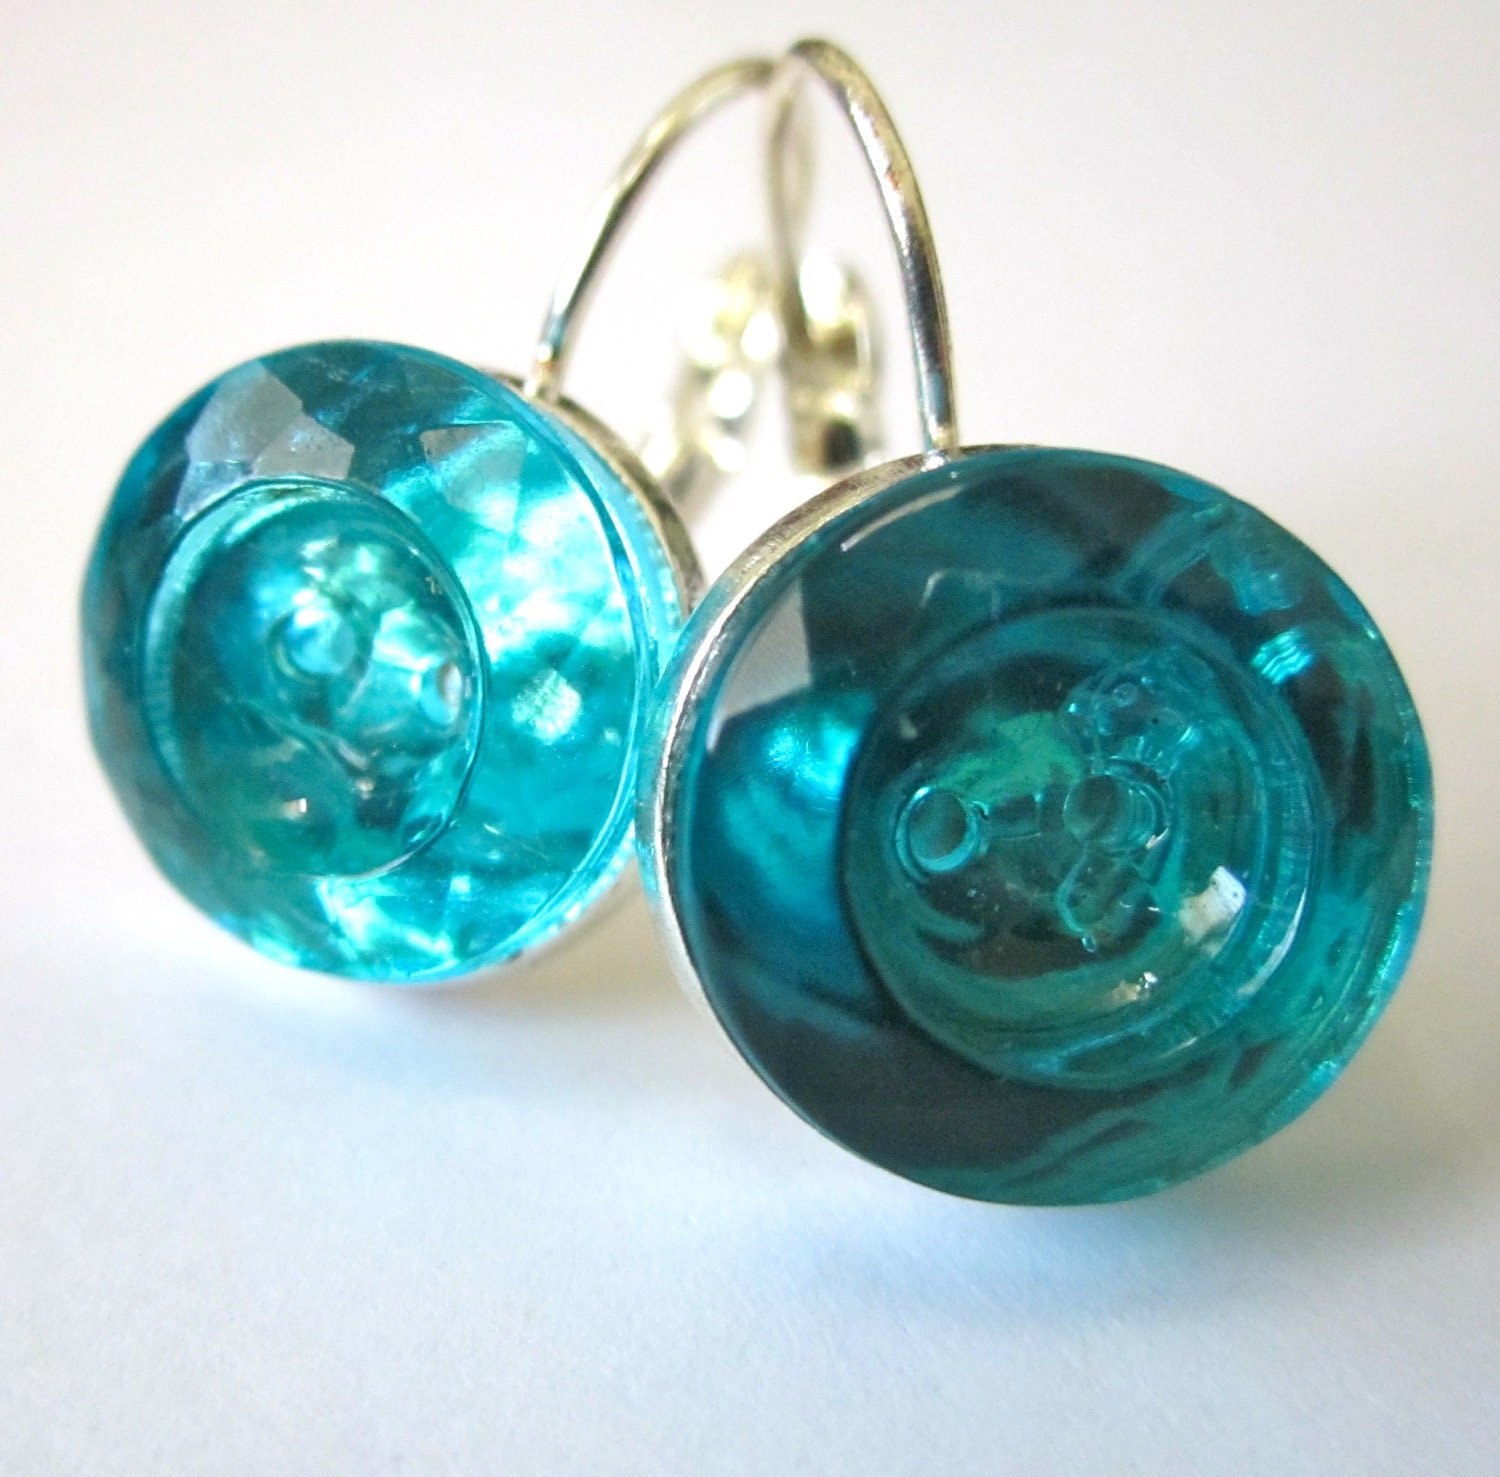 Button Earrings: Vintage Glass Button Earrings AQUA Color Glass Buttons